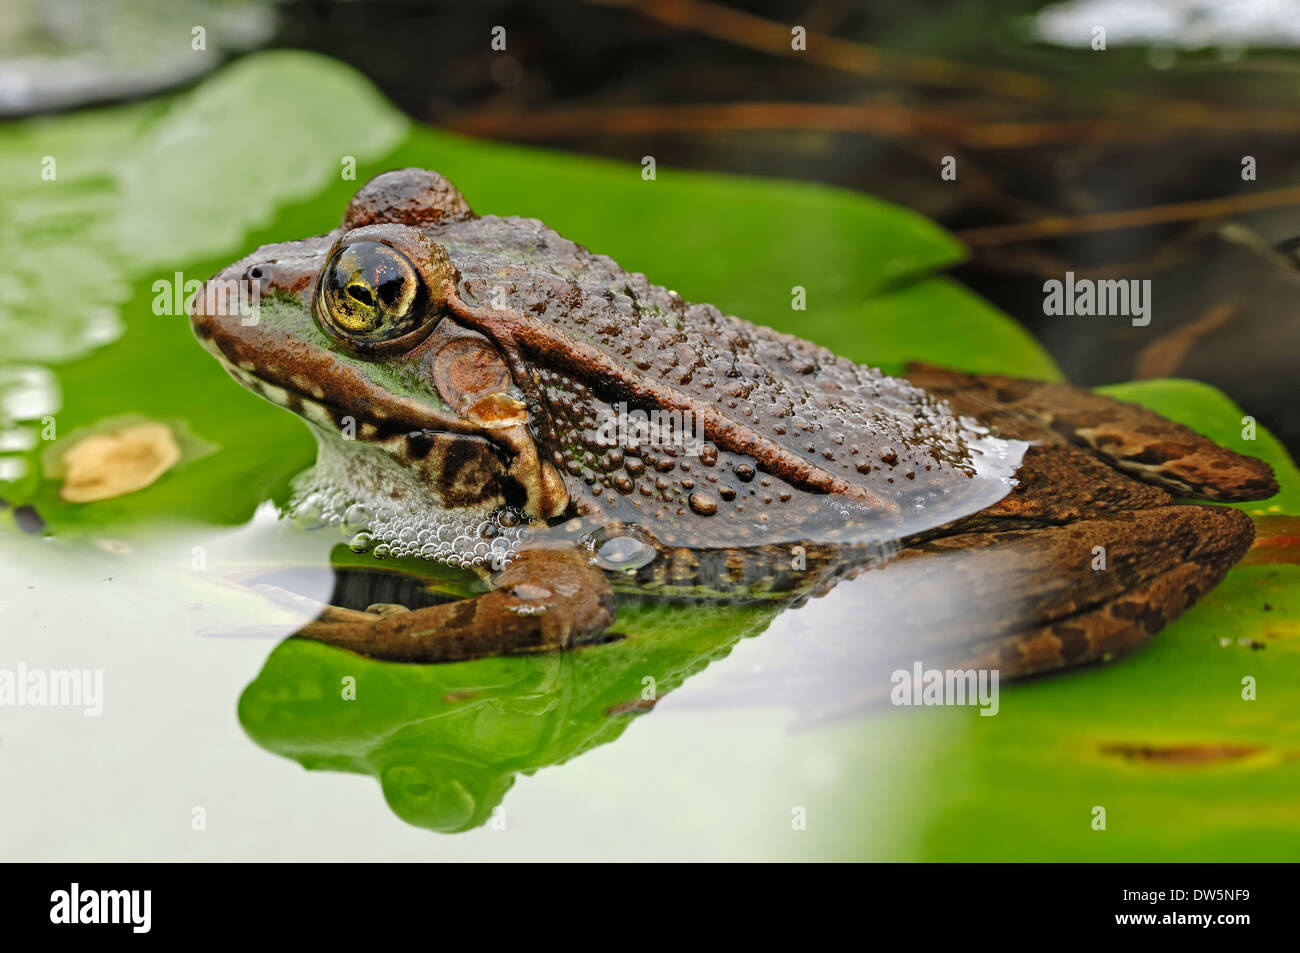 Marsh Frog or Lake Frog (Rana ridibunda, Pelophylax ridibundus), North Rhine-Westphalia, Germany - Stock Image